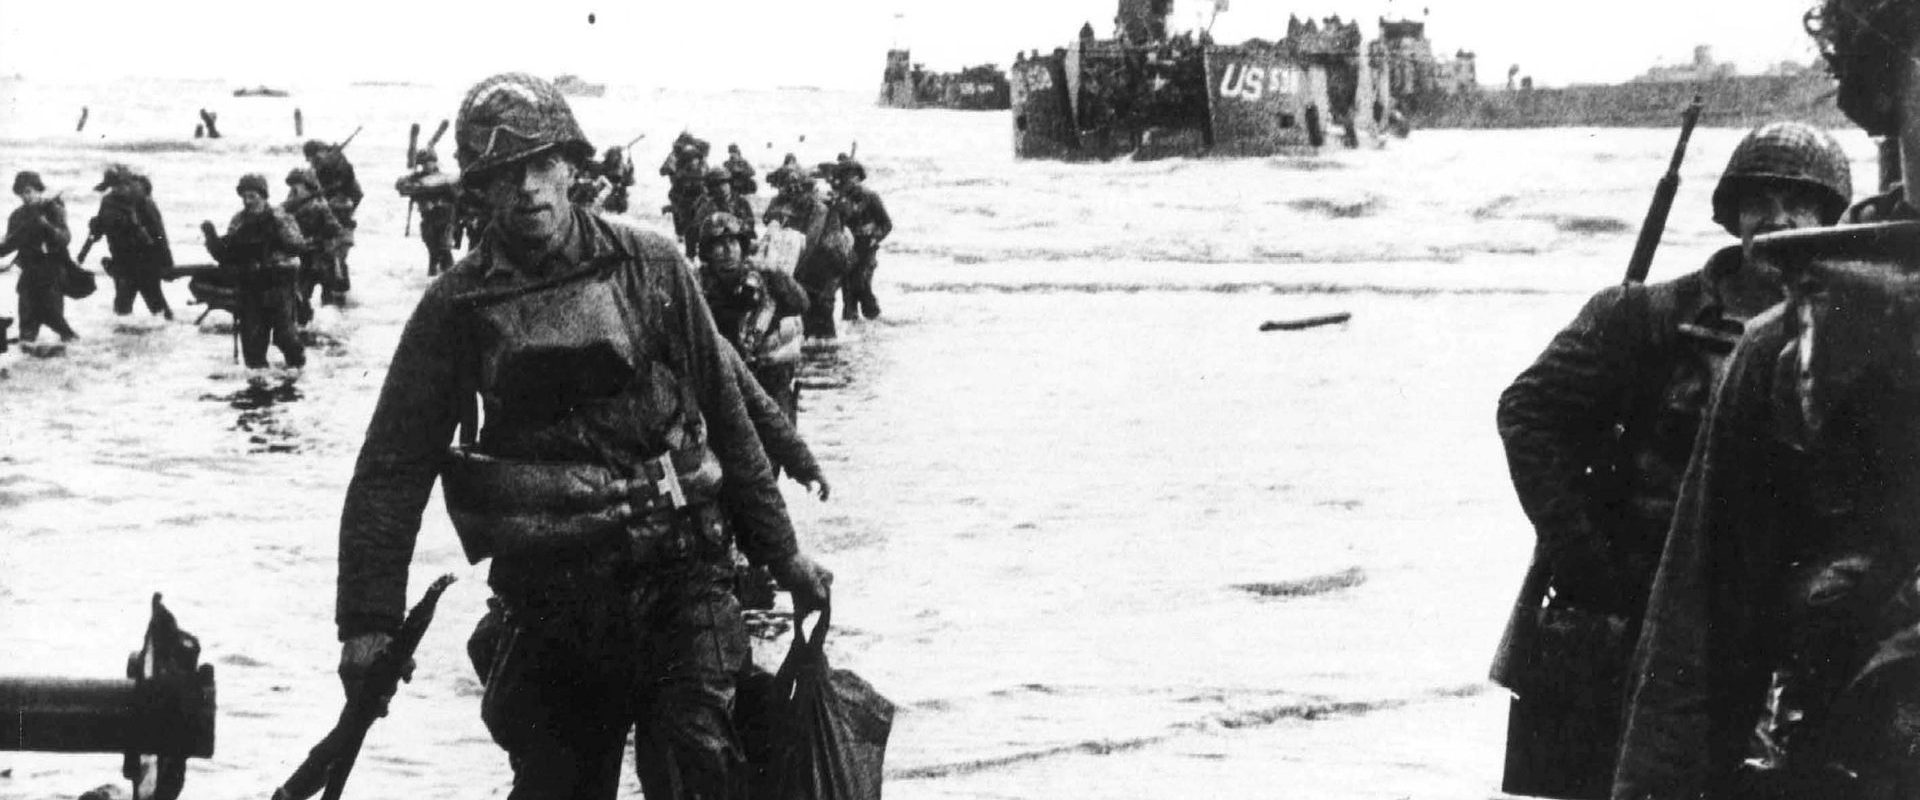 Carrying a full equipment, American assault troops move onto Utah Beach on the norther coast of France. Landing craft, in the background, jams the harbor. 6 June 1944.